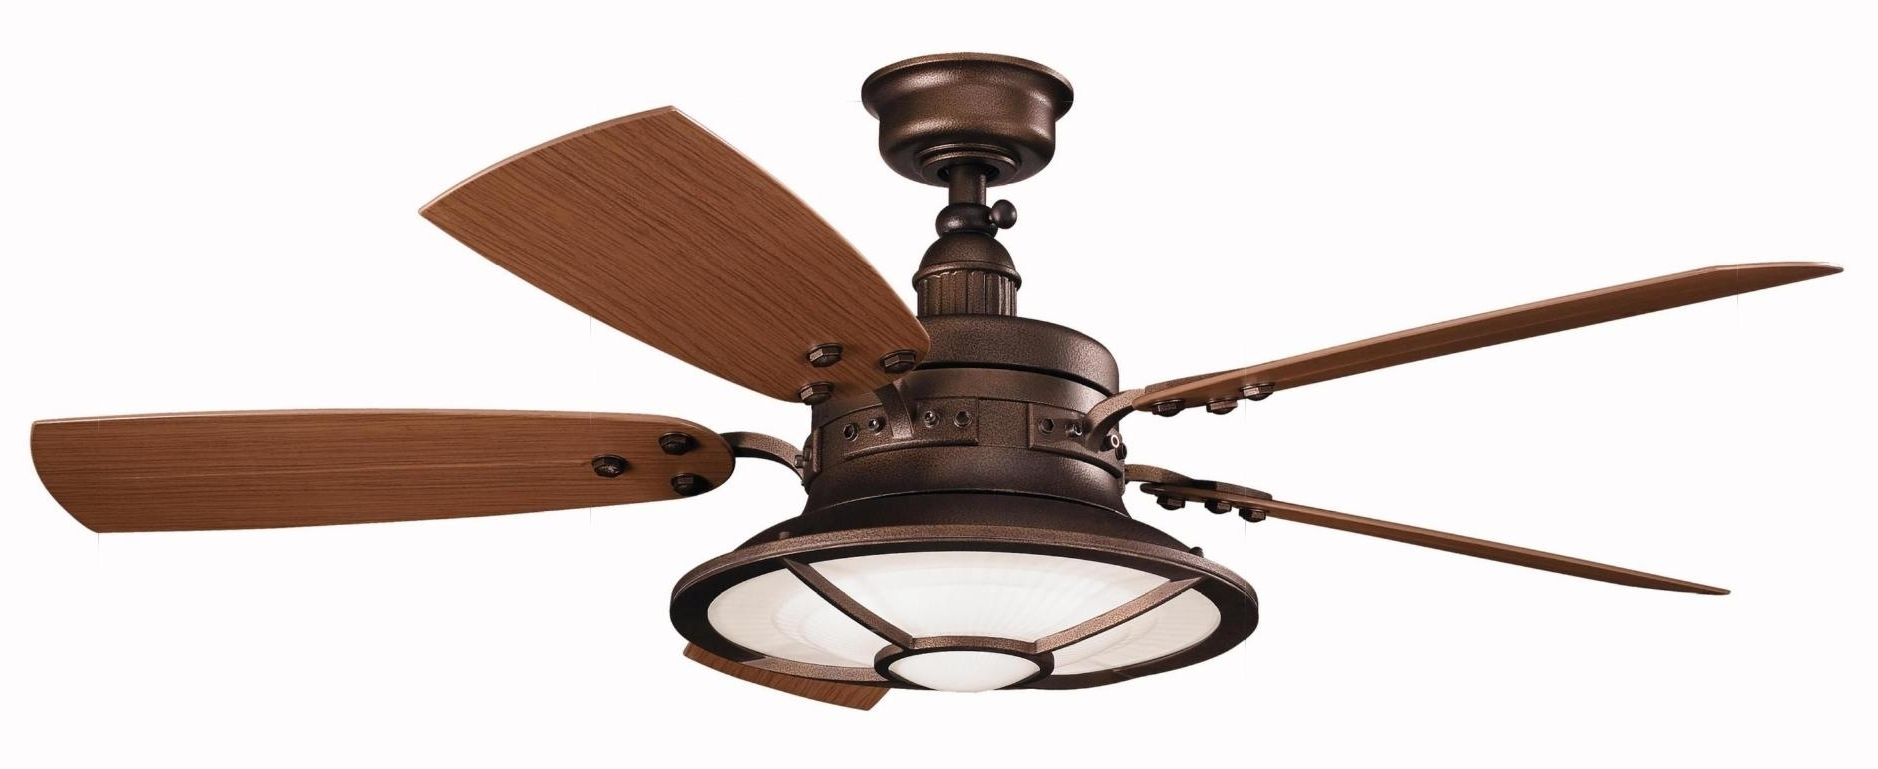 Newest Waterproof Outdoor Ceiling Fans Pertaining To Light : Kichler Fan Led Lighting Ceiling Fans Waterproof Outdoor (View 10 of 20)